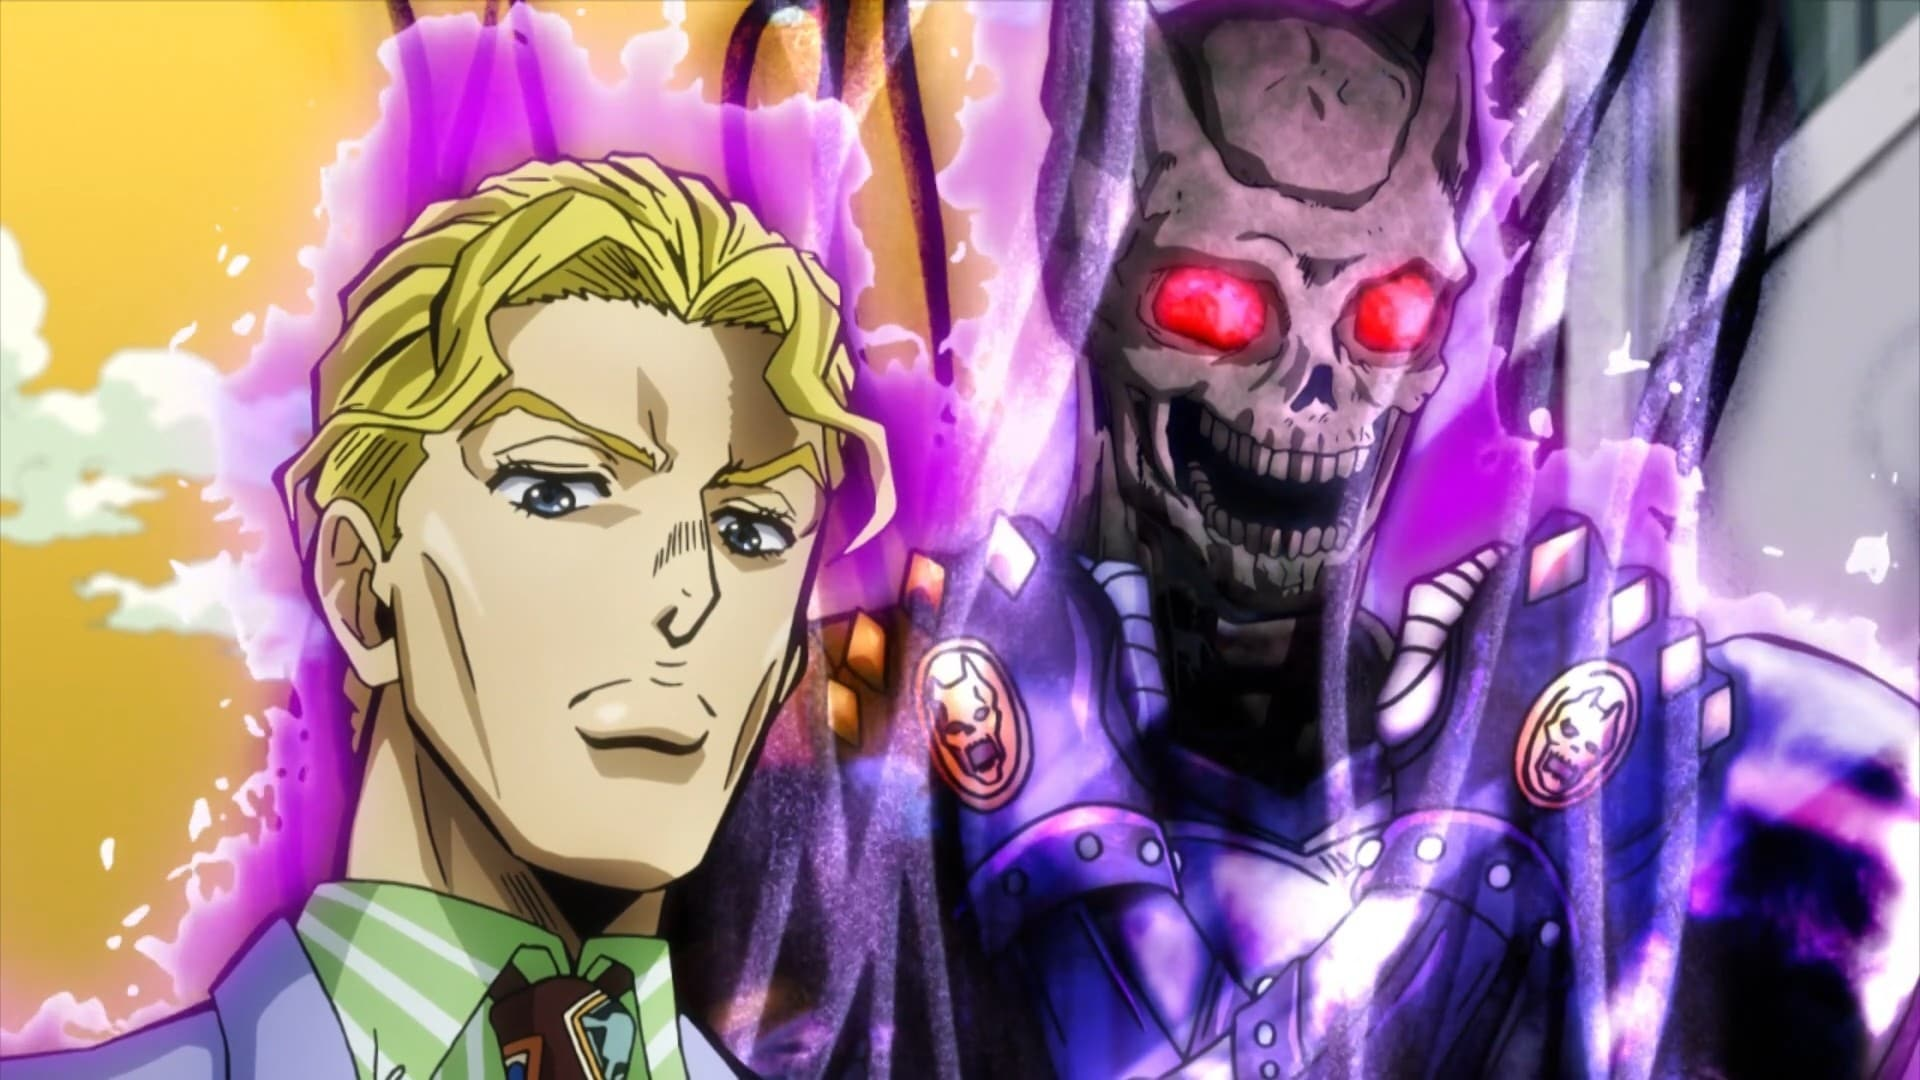 jojos bizarre adventure stand users The year is 1987 and 17-year-old jotaro kujo finds himself suddenly plagued by a ghost-like entity jotaroâ s grandfather joseph joestar, a veteran of a fight to save humanity fifty years prior, arrives with his own supernatural aura and explains that this power, known as a â stand,â physically manifests its userâ s spirit and can be controlled by its user at will.